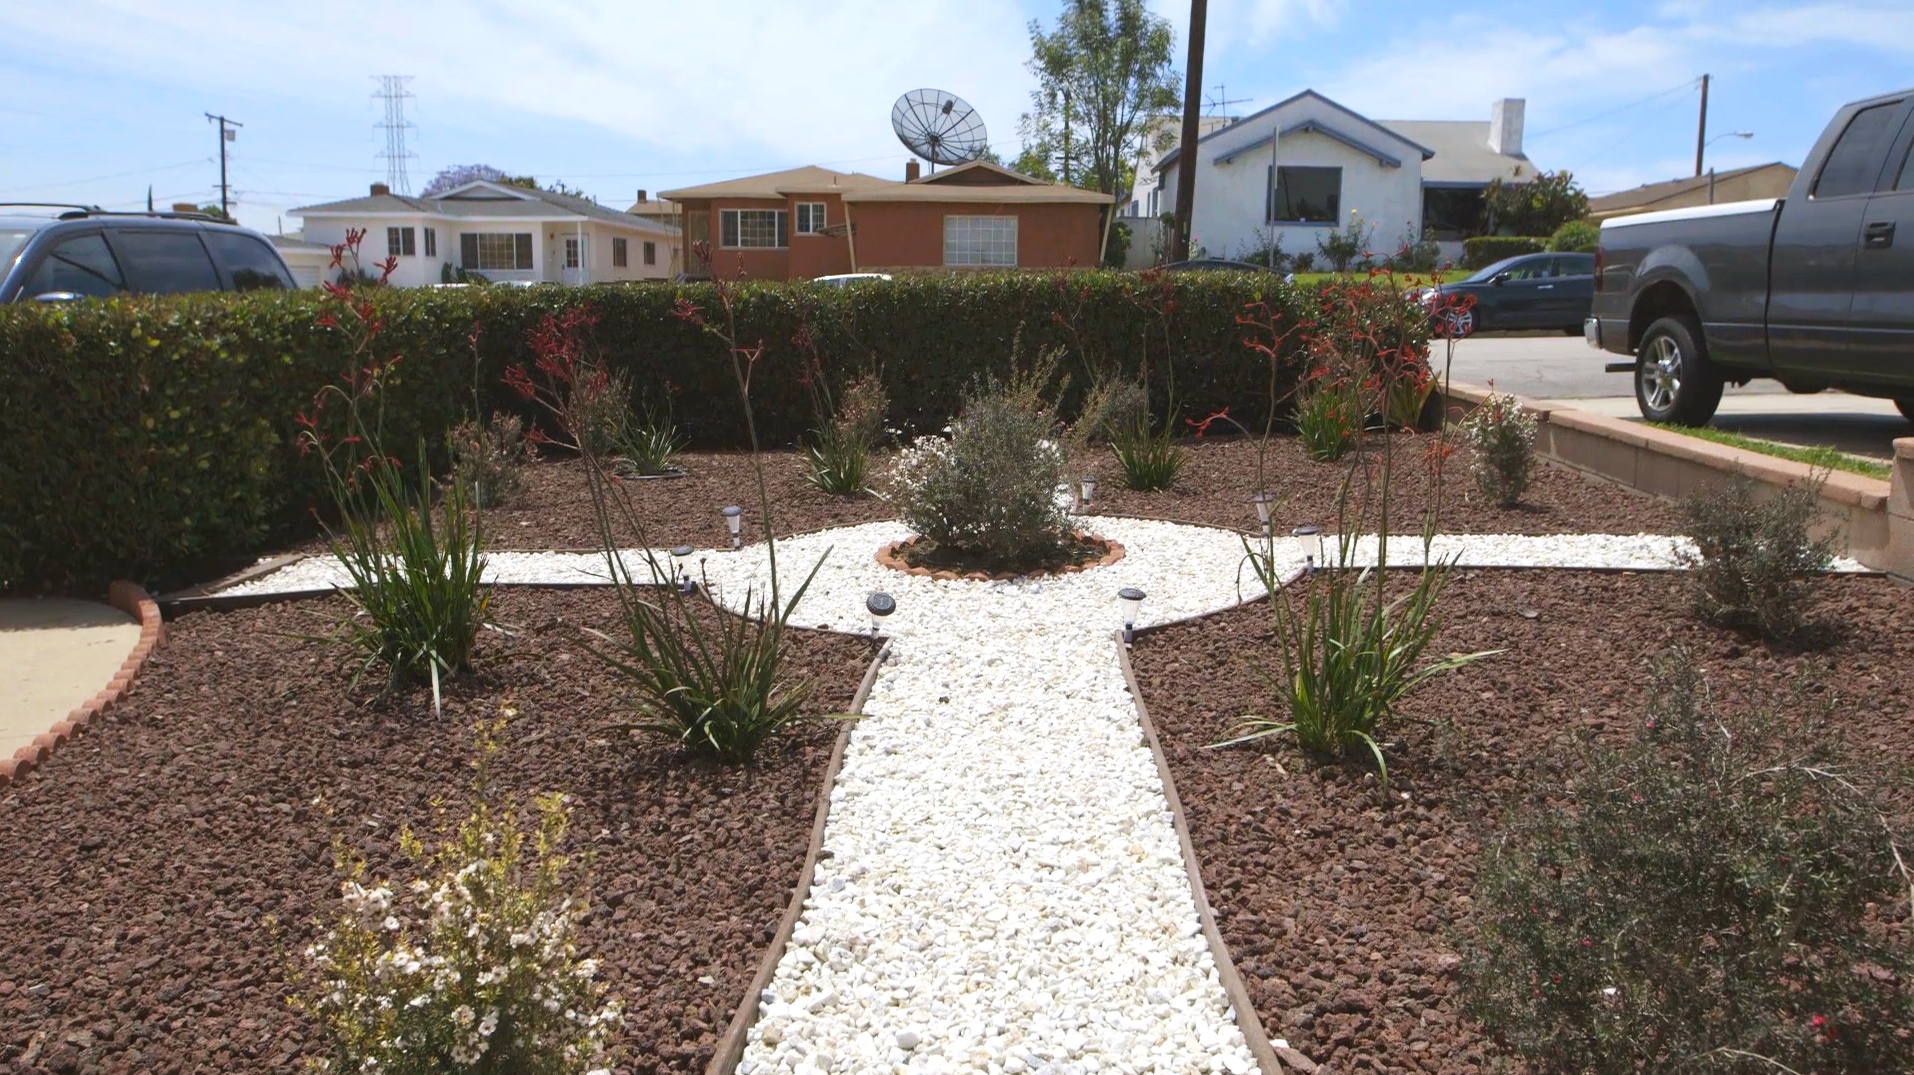 5 water saving ways to replace lawns during californias drought - Garden Ideas To Replace Grass